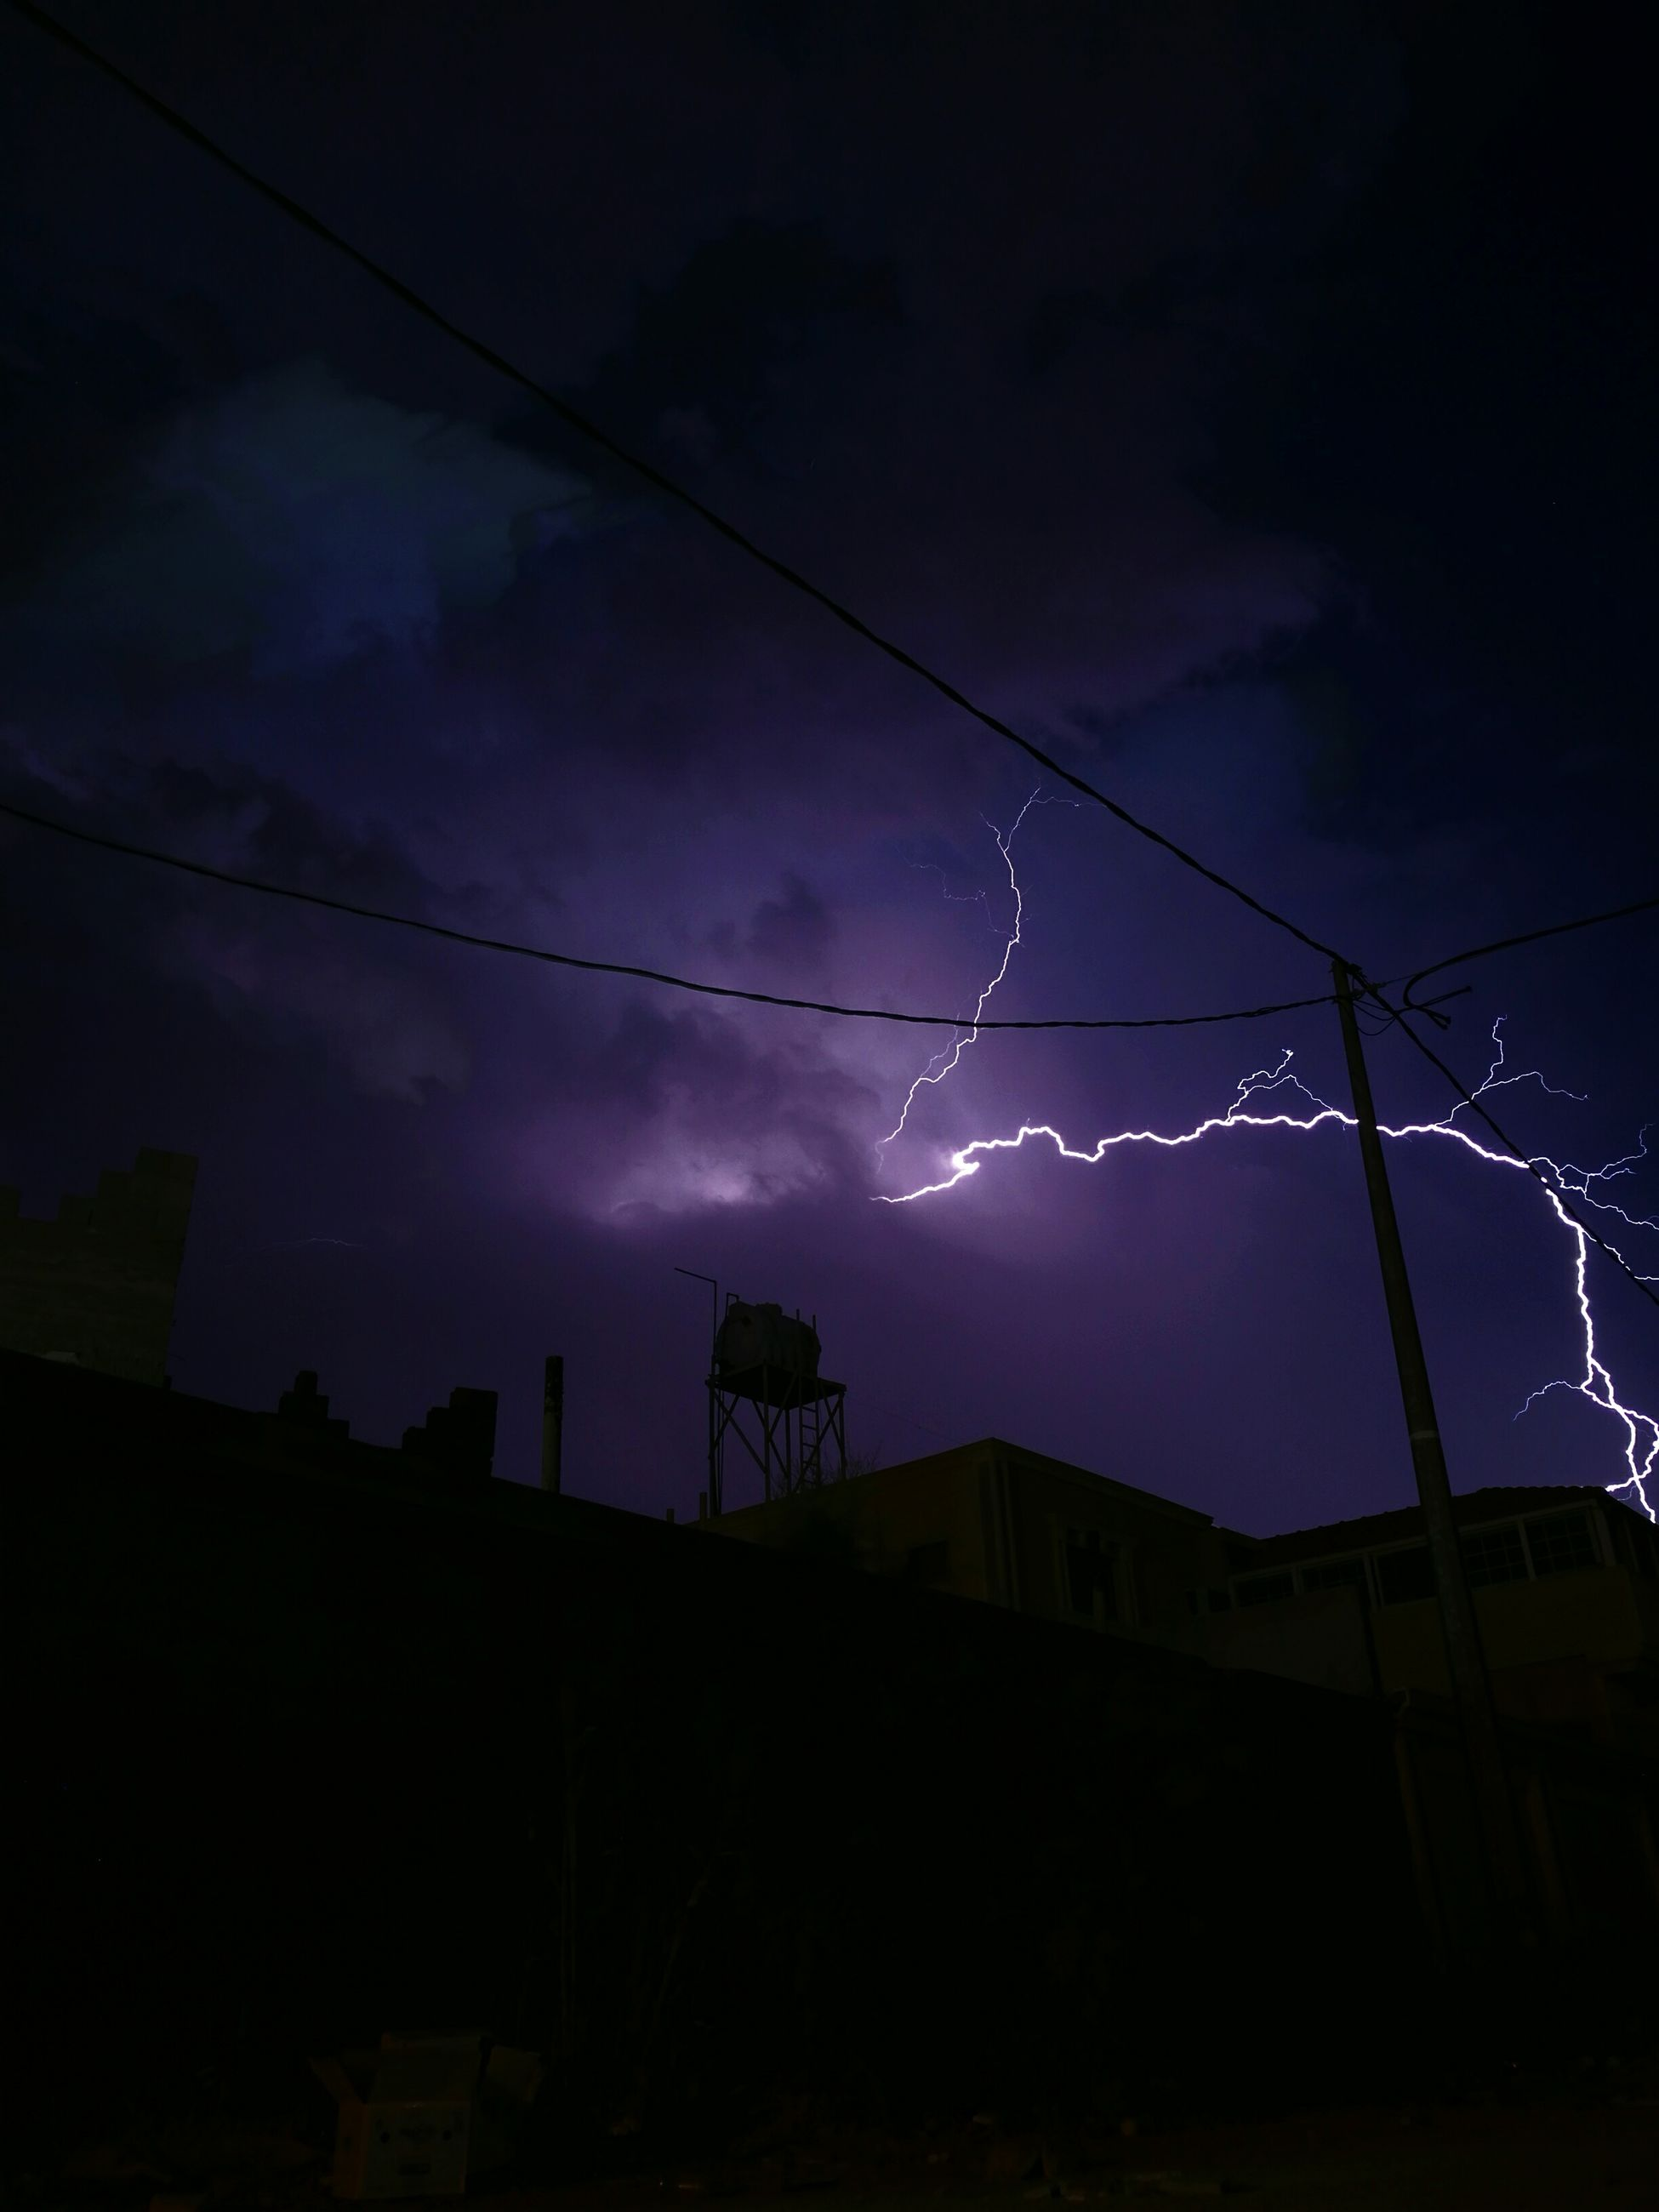 sky, night, dusk, electricity, cloud - sky, no people, low angle view, sunset, lightning, cable, illuminated, nature, outdoors, silhouette, electricity pylon, power line, tree, power supply, dramatic sky, storm cloud, built structure, beauty in nature, architecture, thunderstorm, forked lightning, power in nature